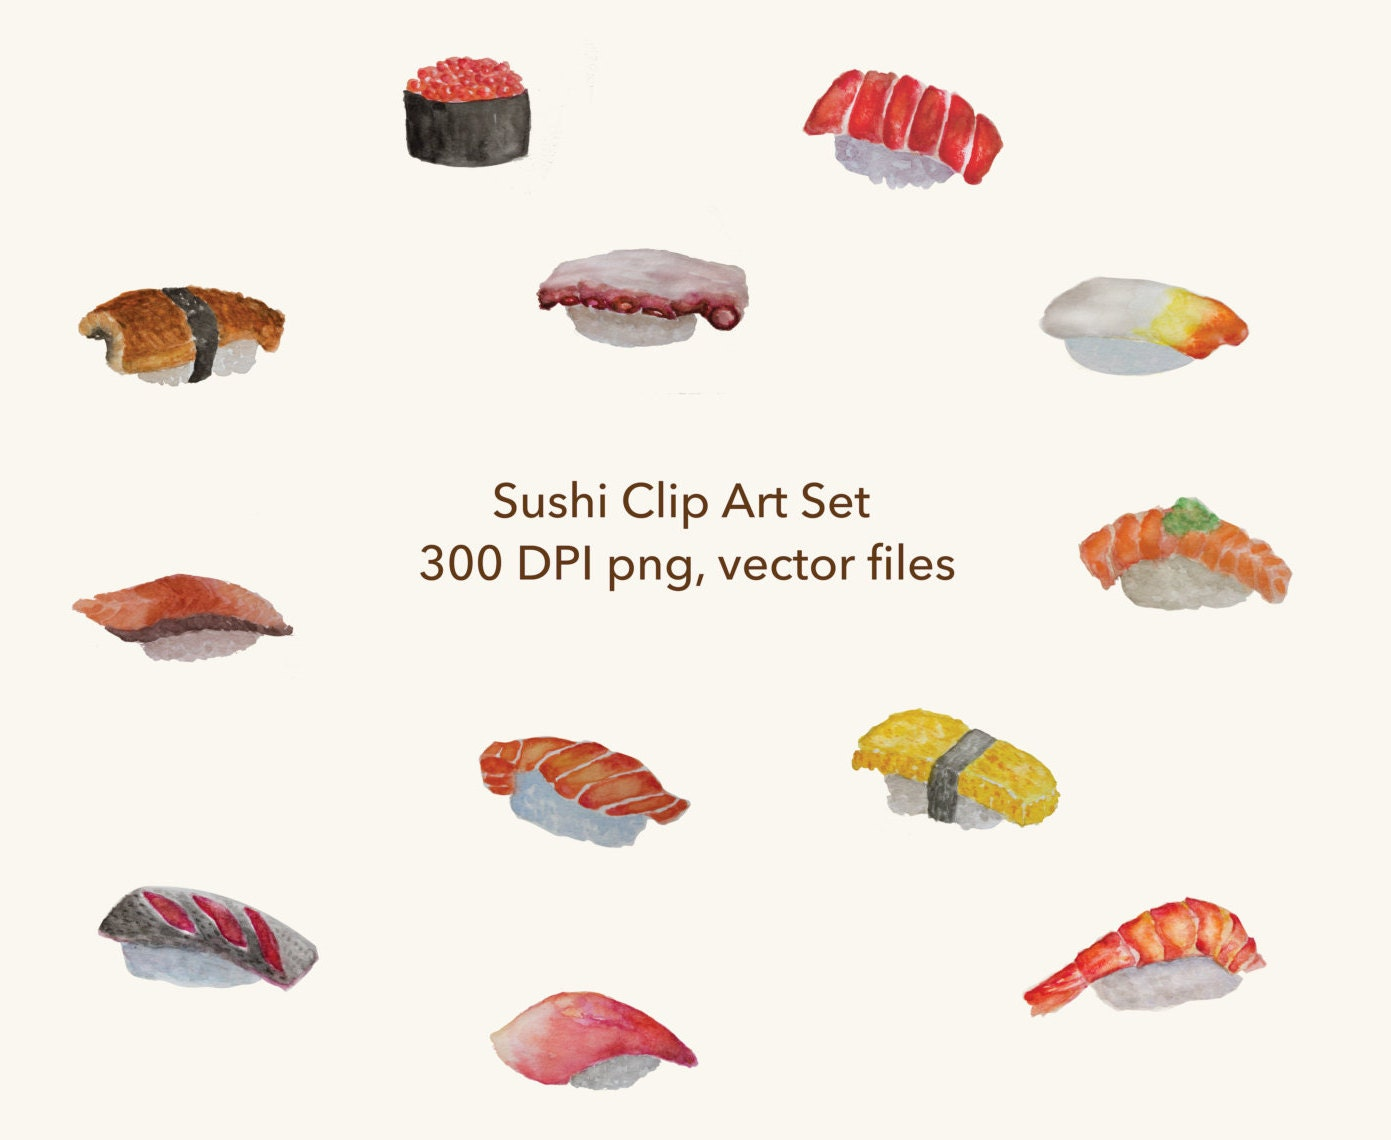 Sushi Clip Art Set-Japan Clip Art Design